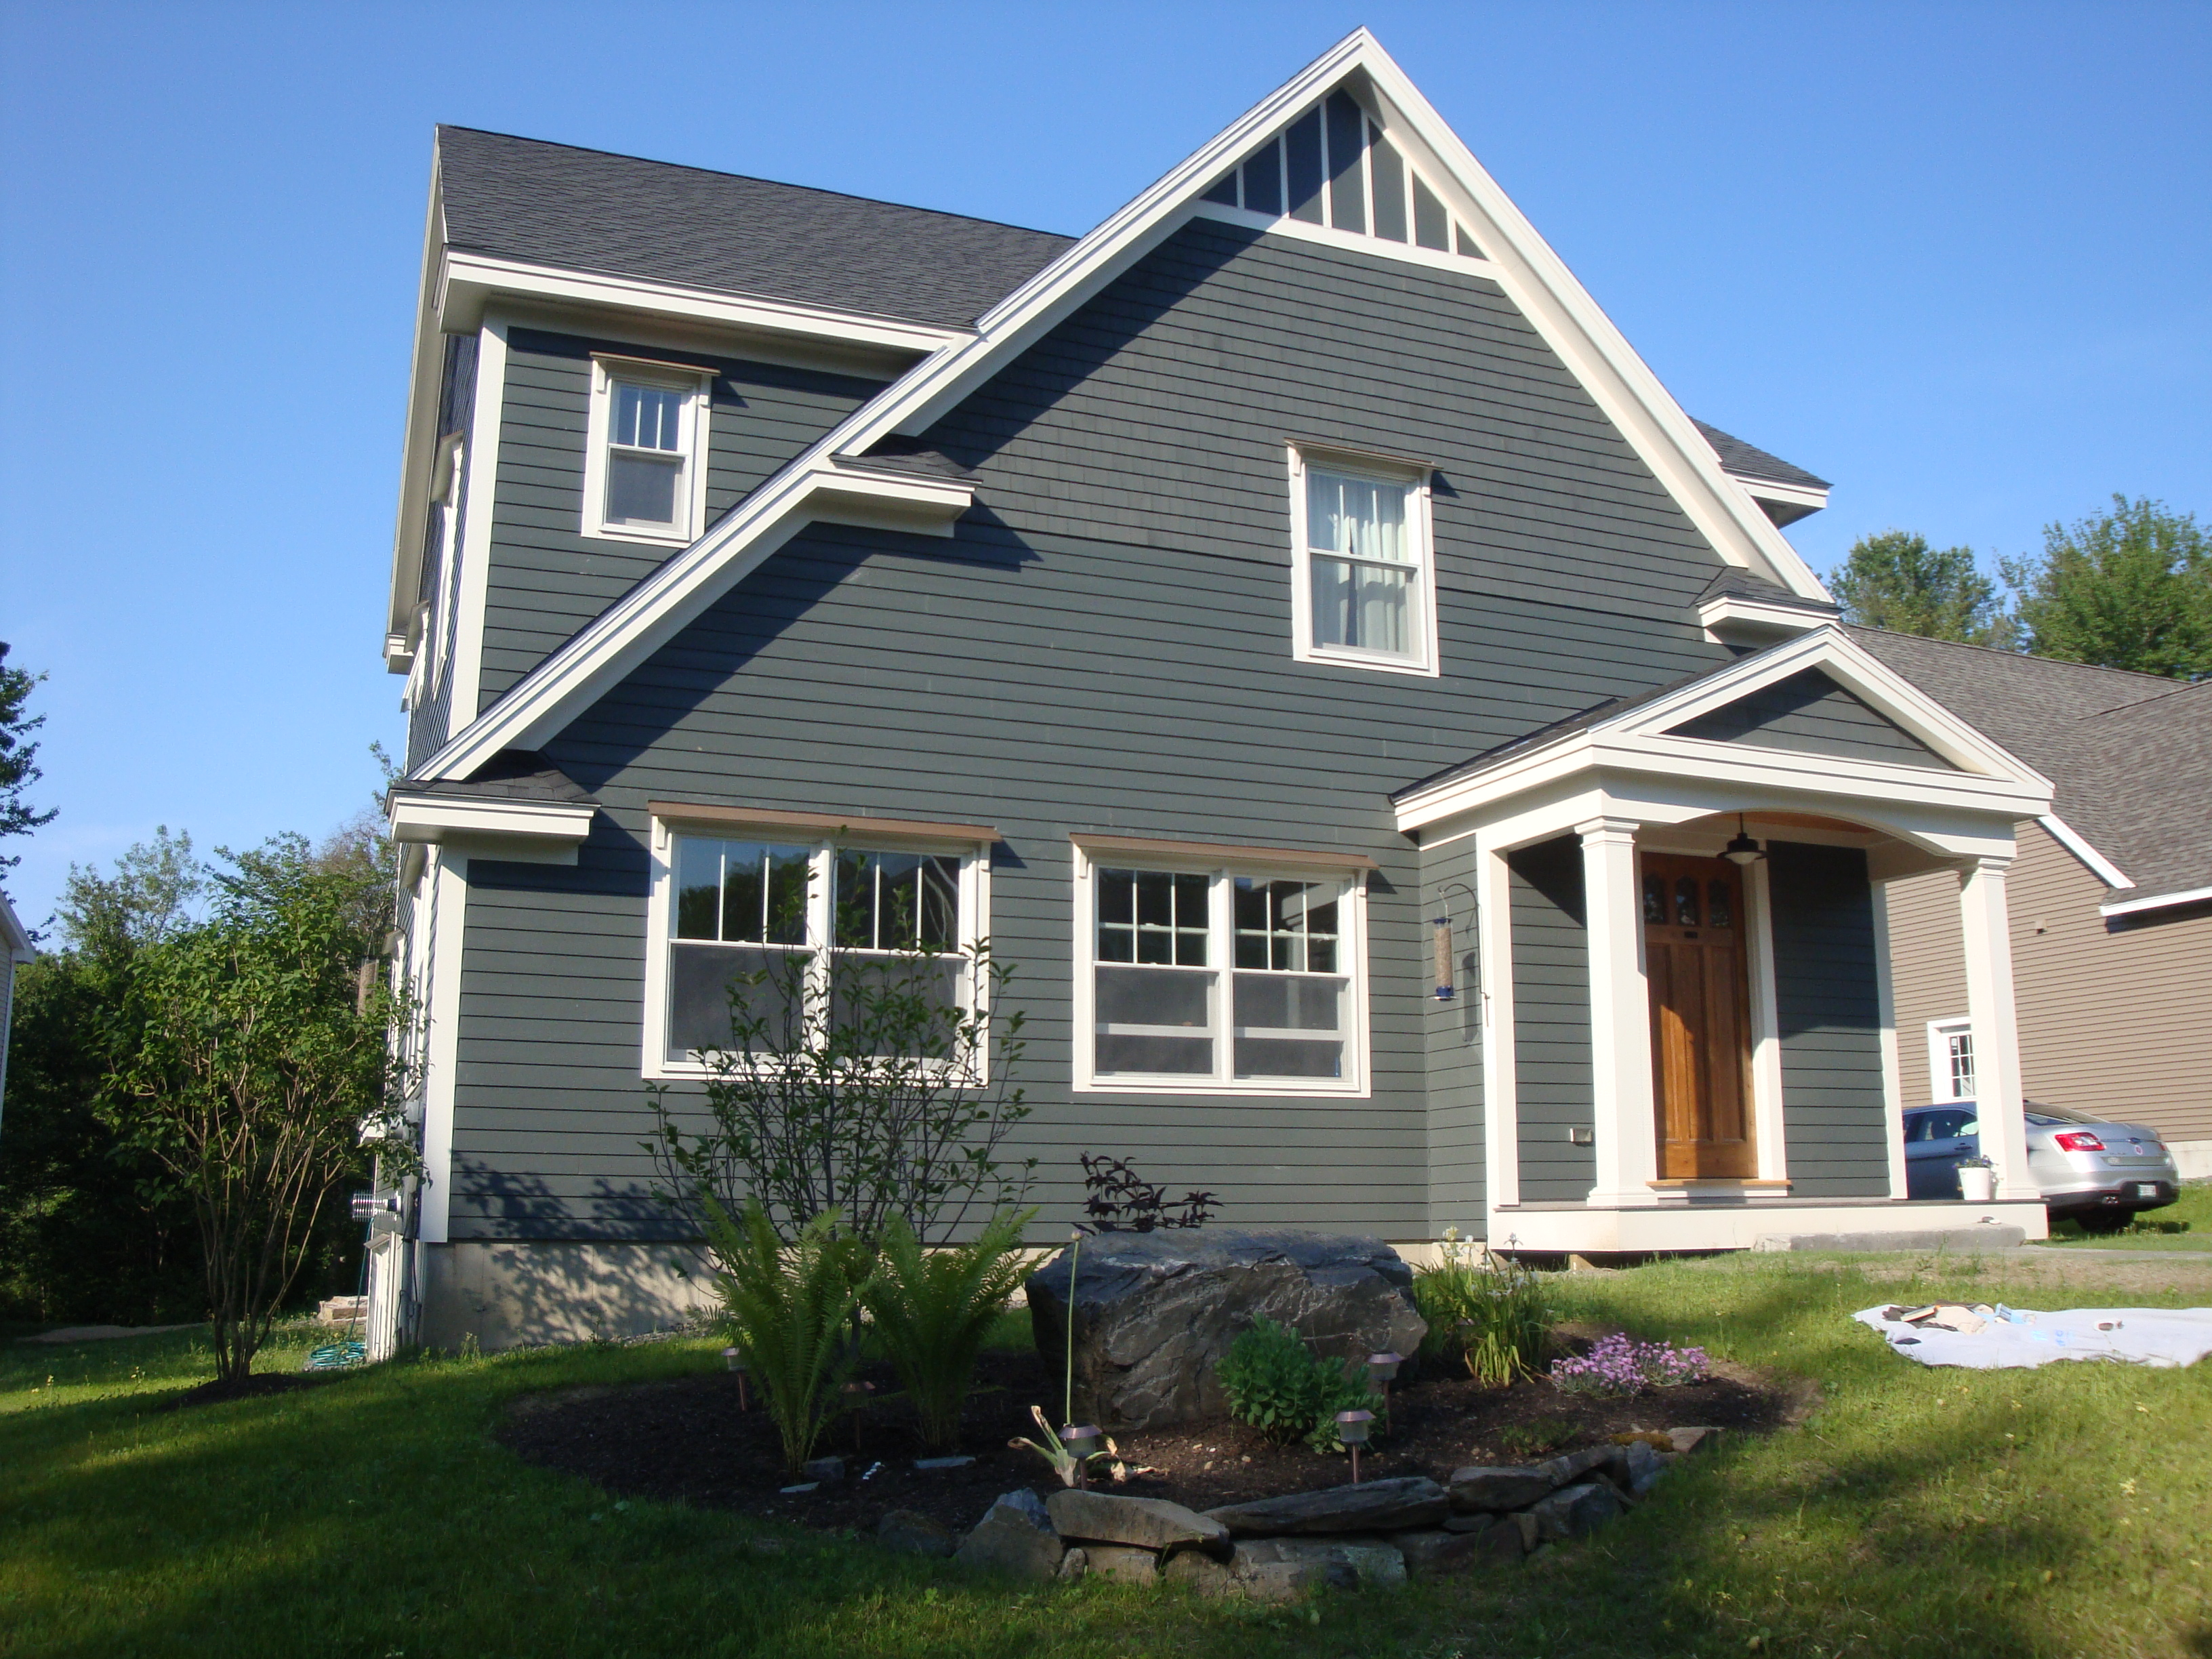 Take A Look At The Entire Home Building Process From A Z! Http://